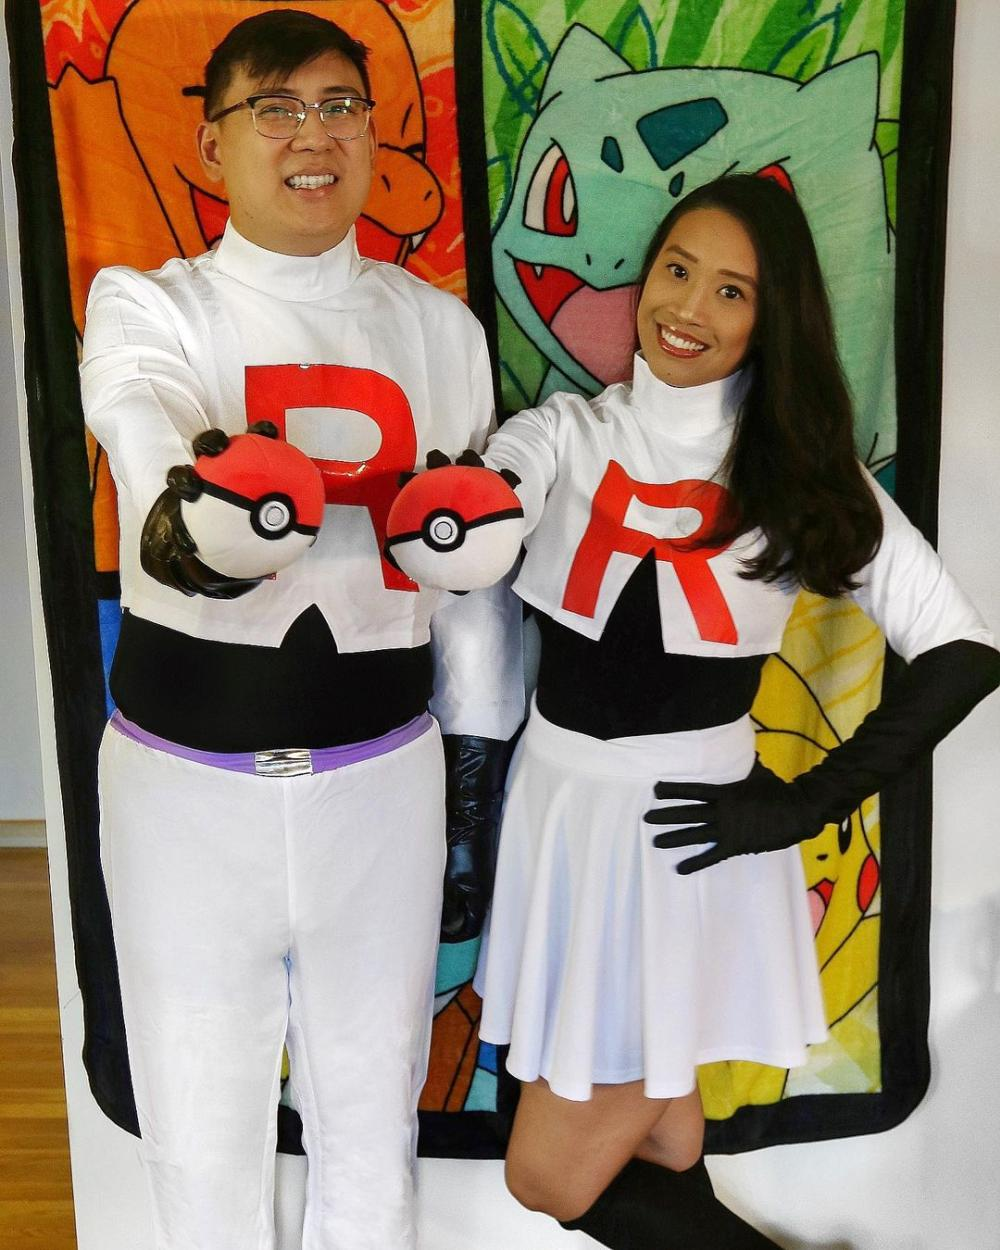 Jessie and james from team rocket funny duo costumes